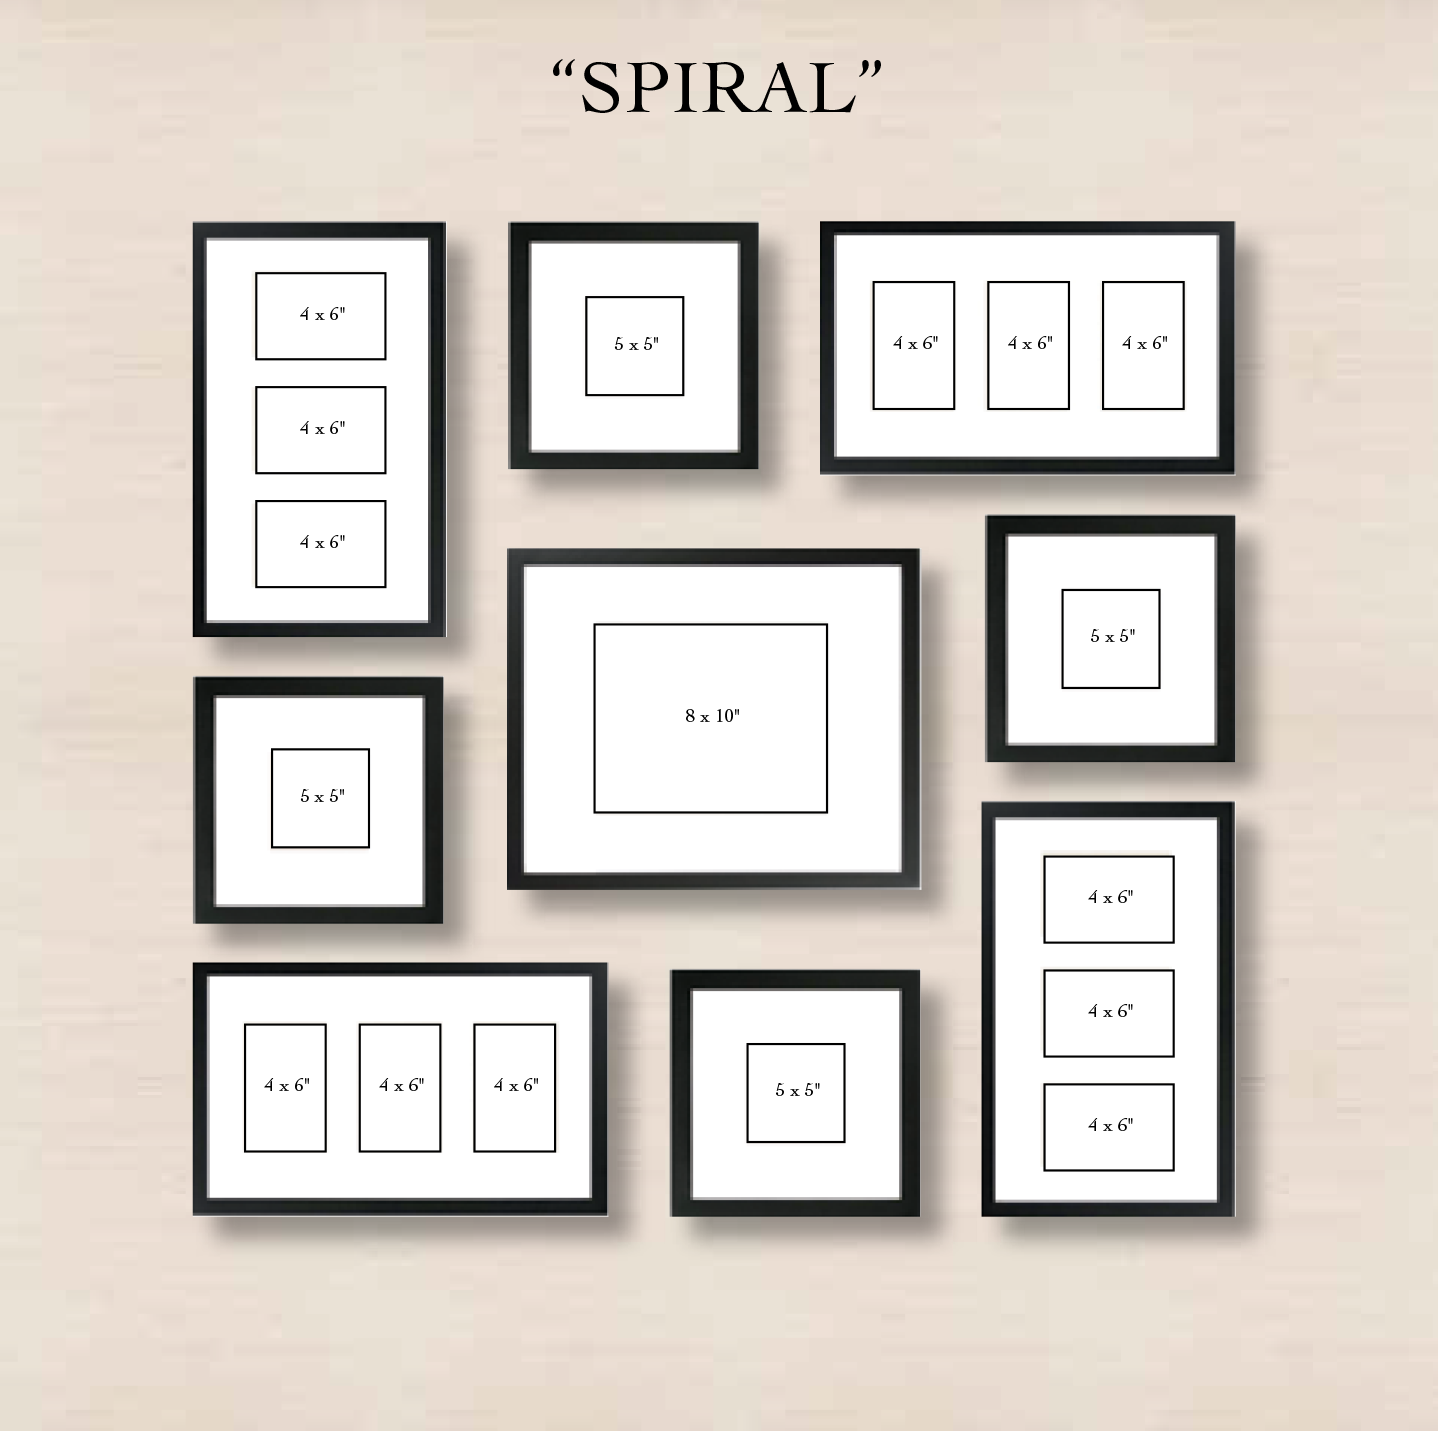 spiral gallery wall layout tip start with placing the center frame and then spiral out the other frames in the arrangement you see